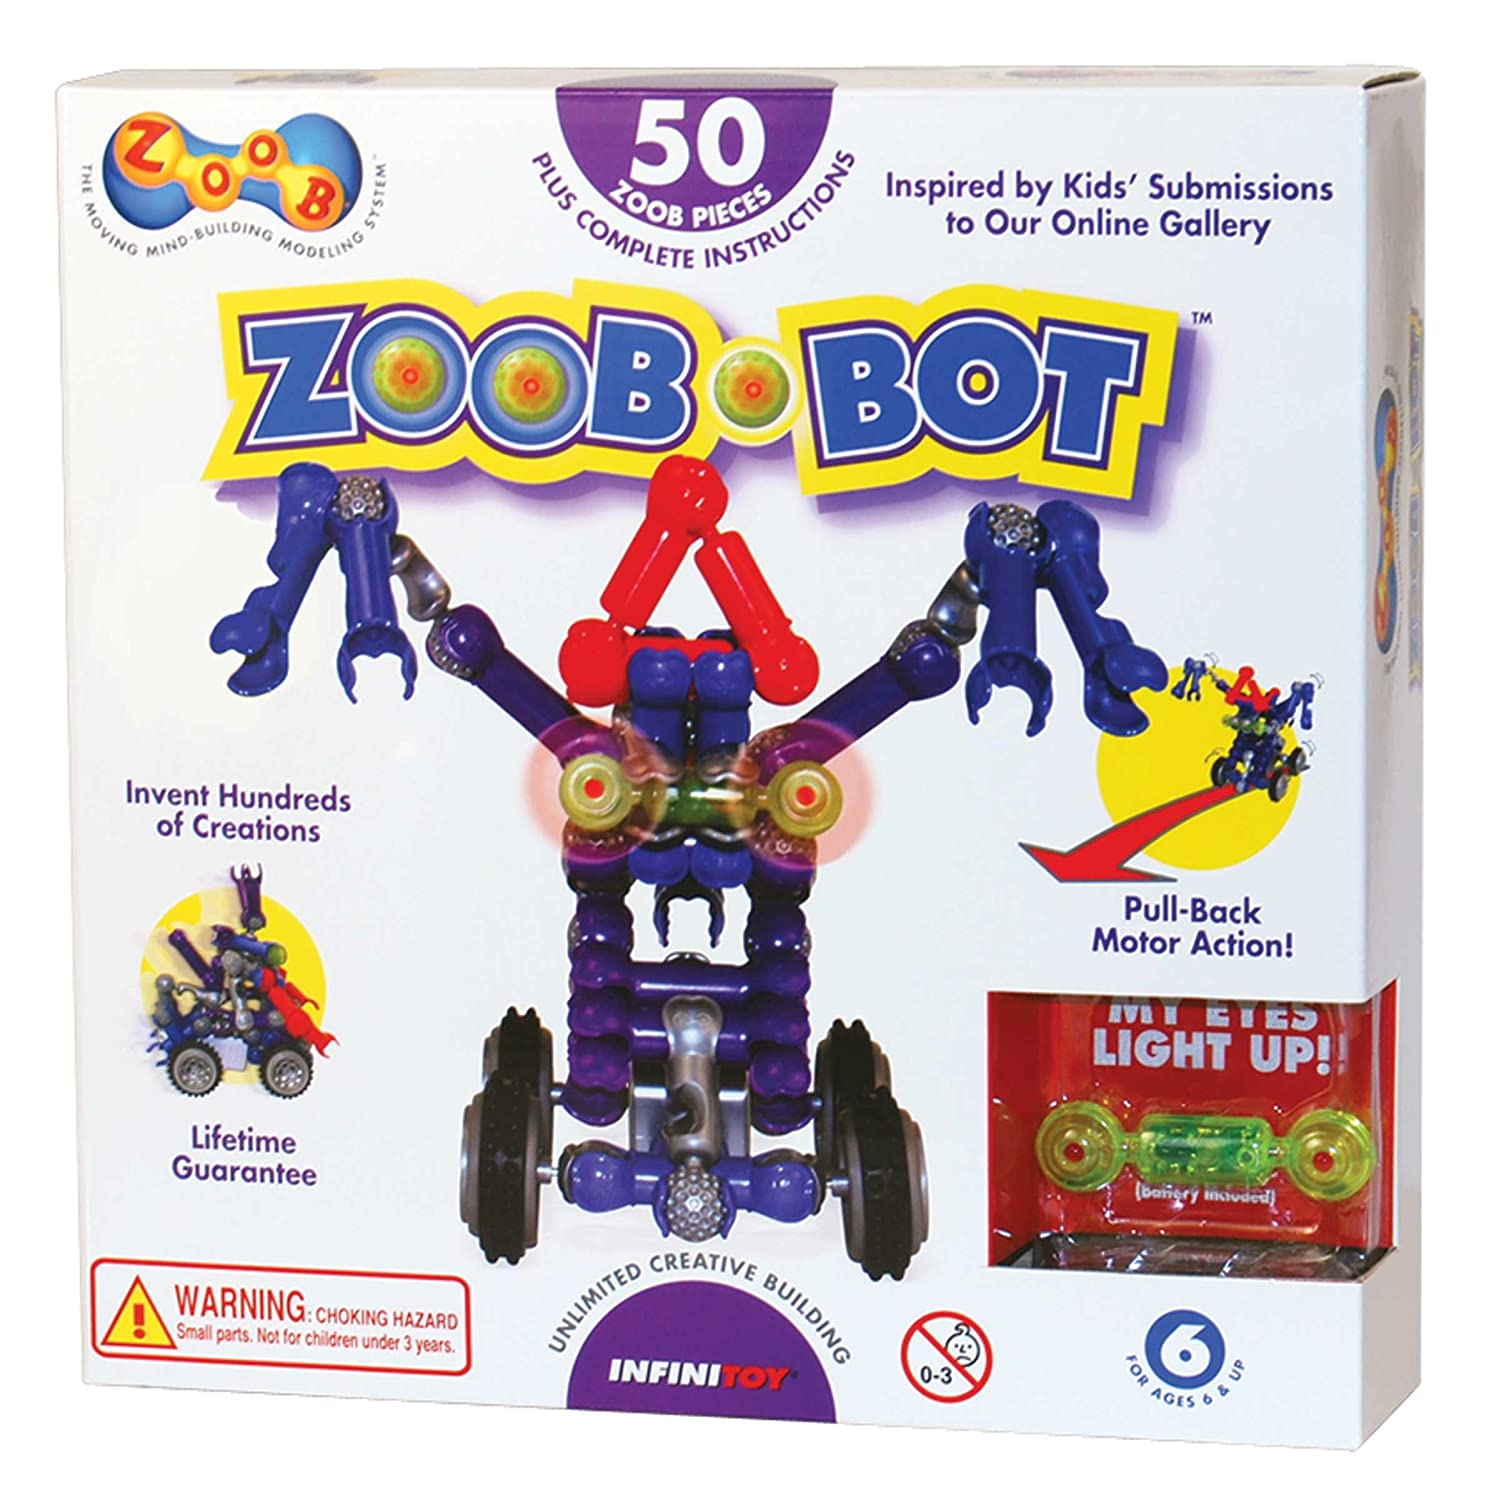 10 Cool Thinking Games and Brain Toys Figur8 Nurture for the